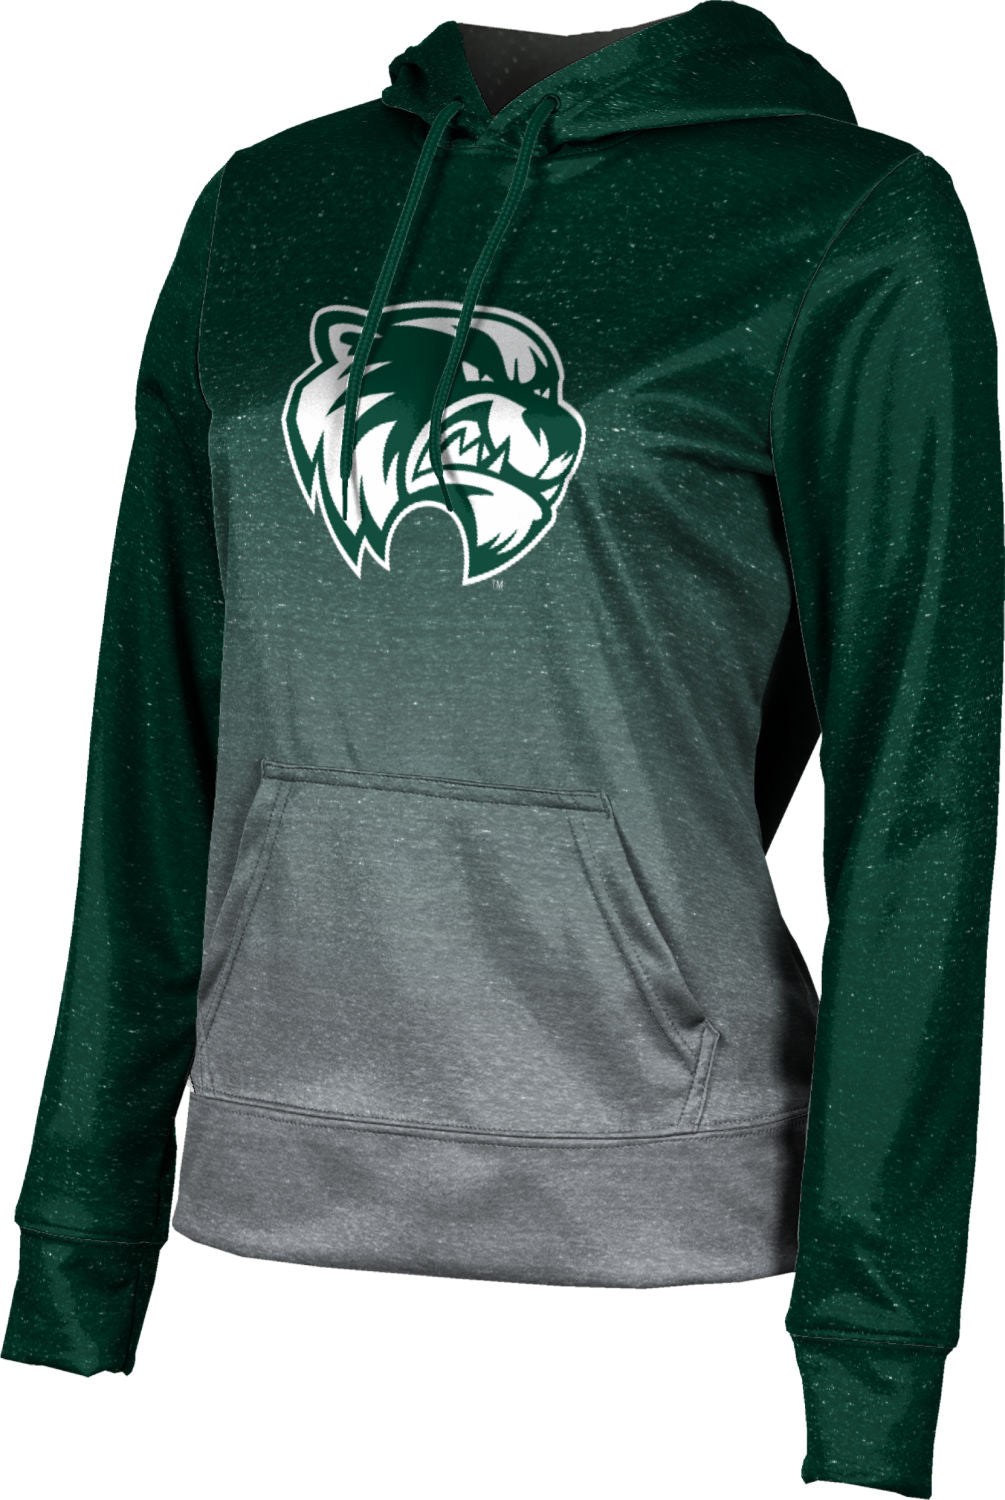 Utah Valley University: Girls' Pullover Hoodie - Gradient